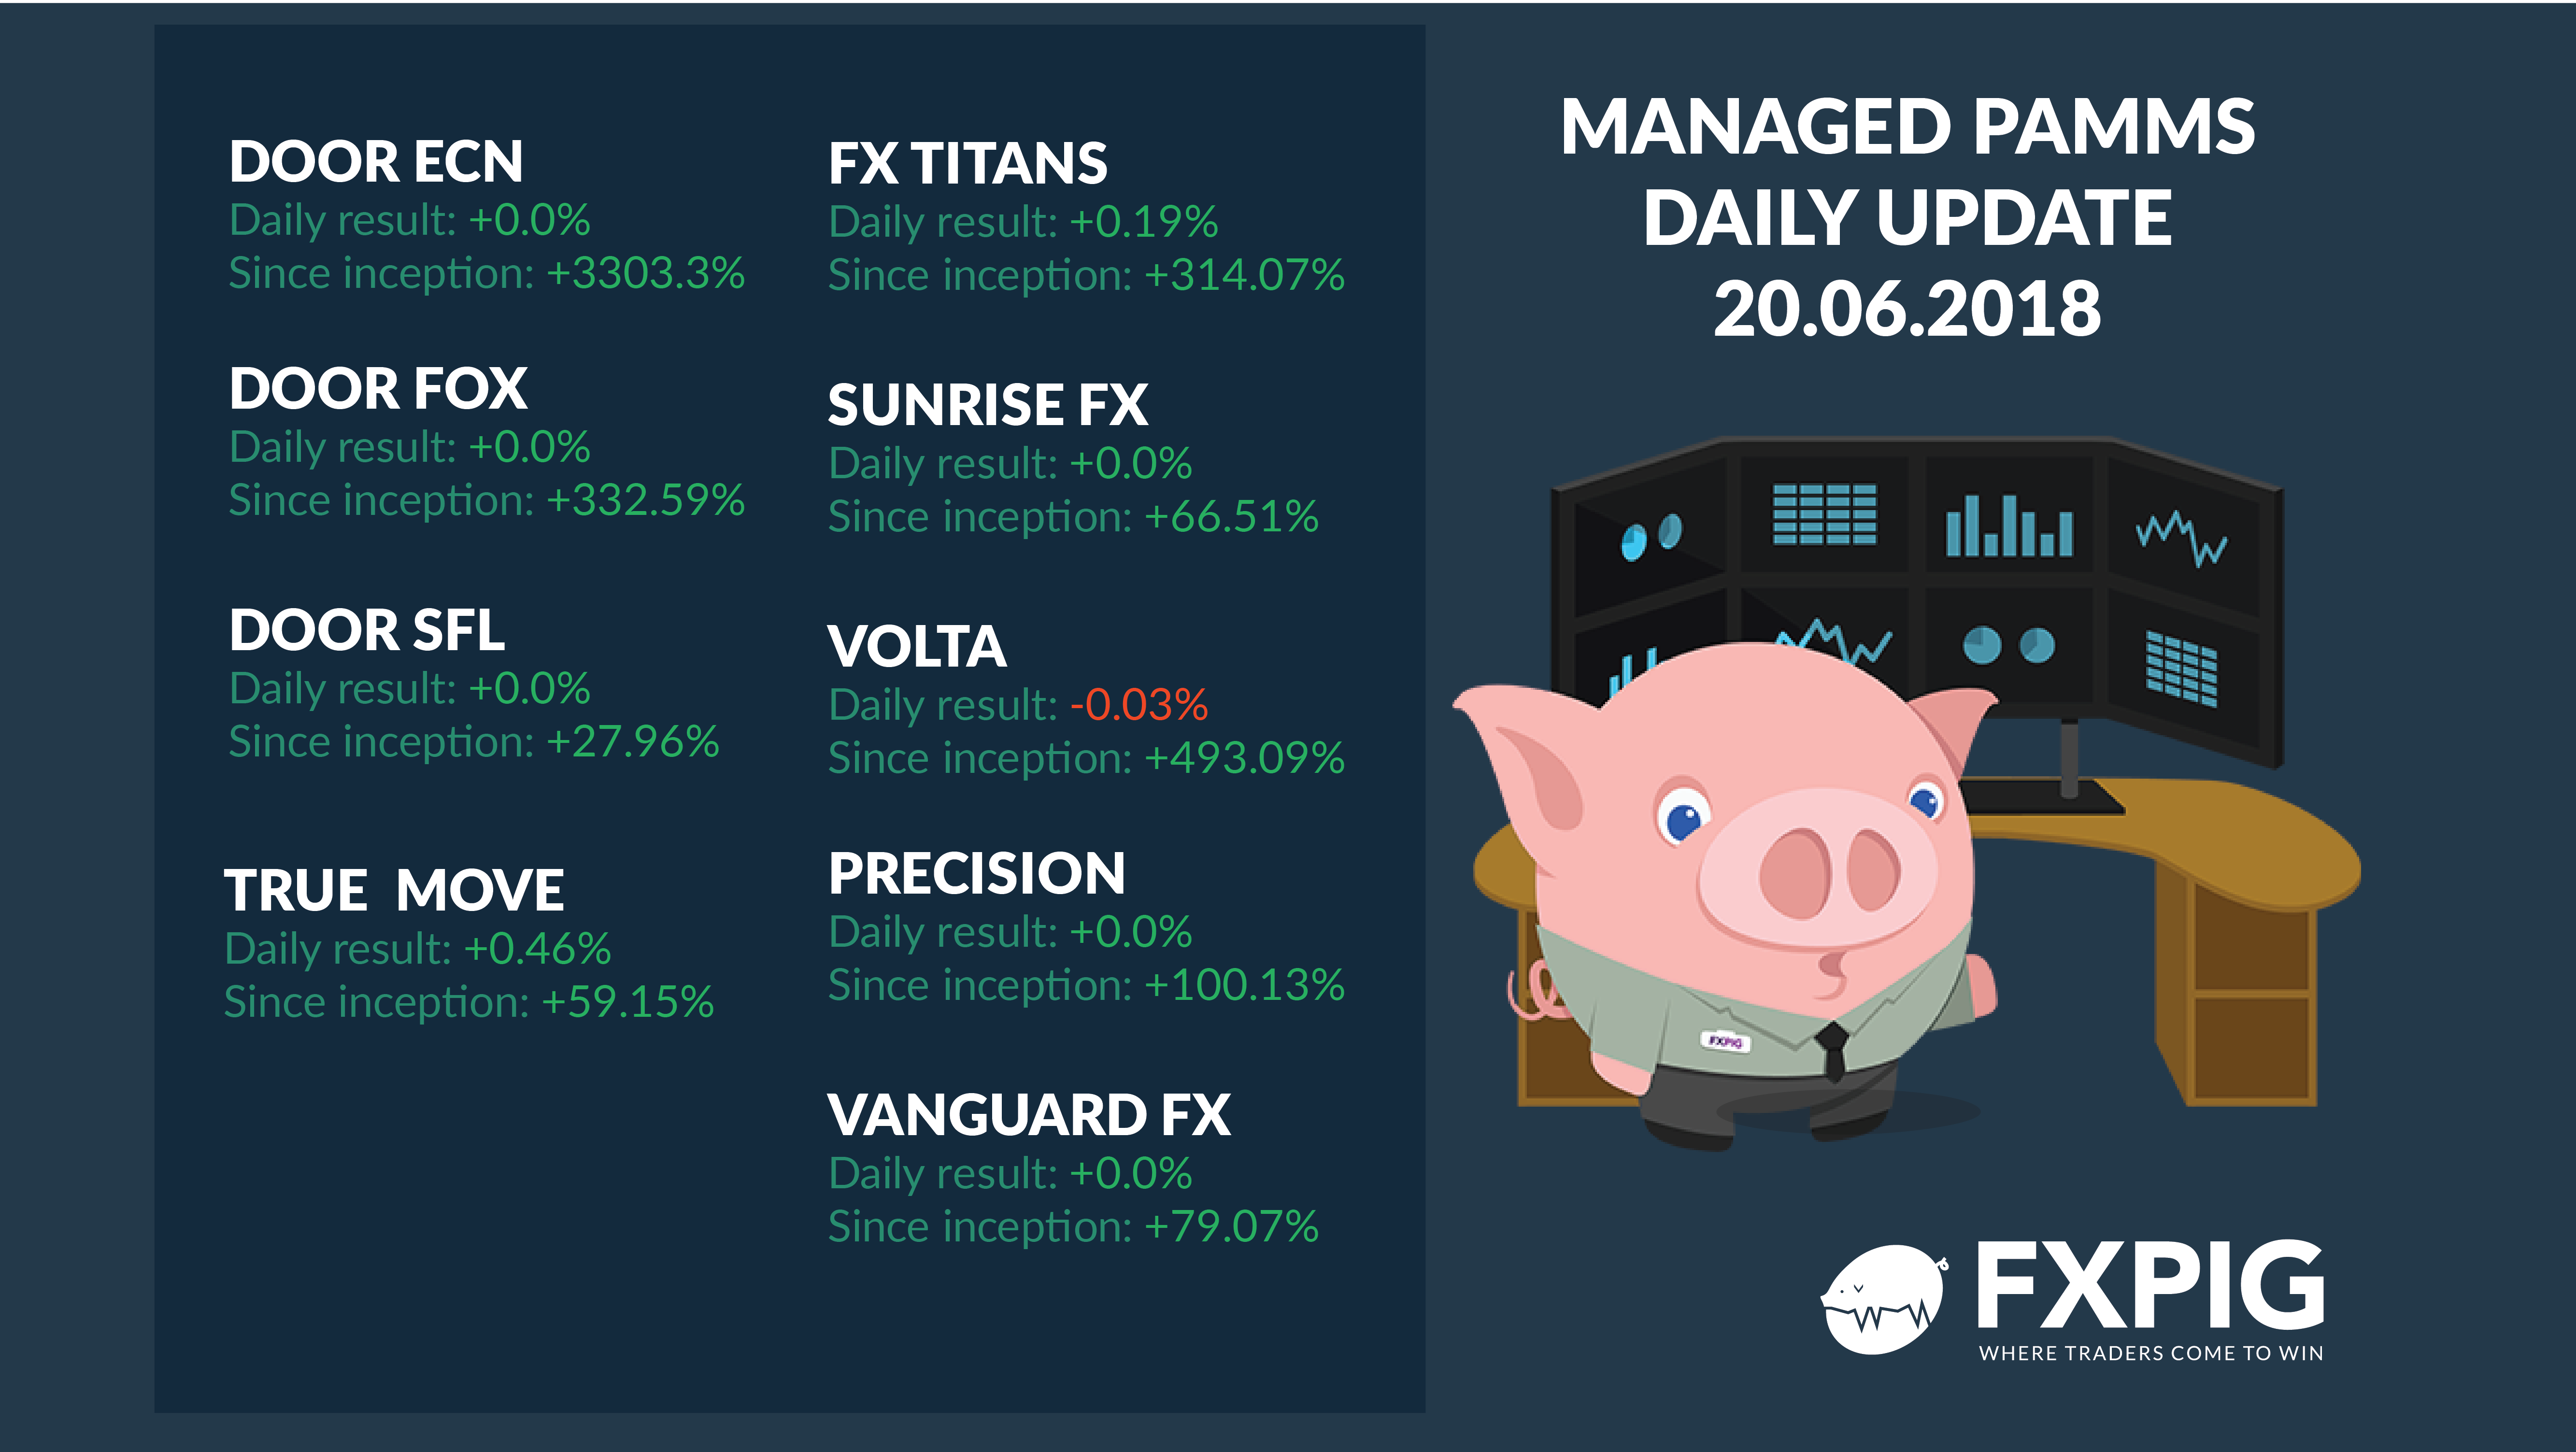 FOREX_Daily-managed-accounts2006_FXPIG